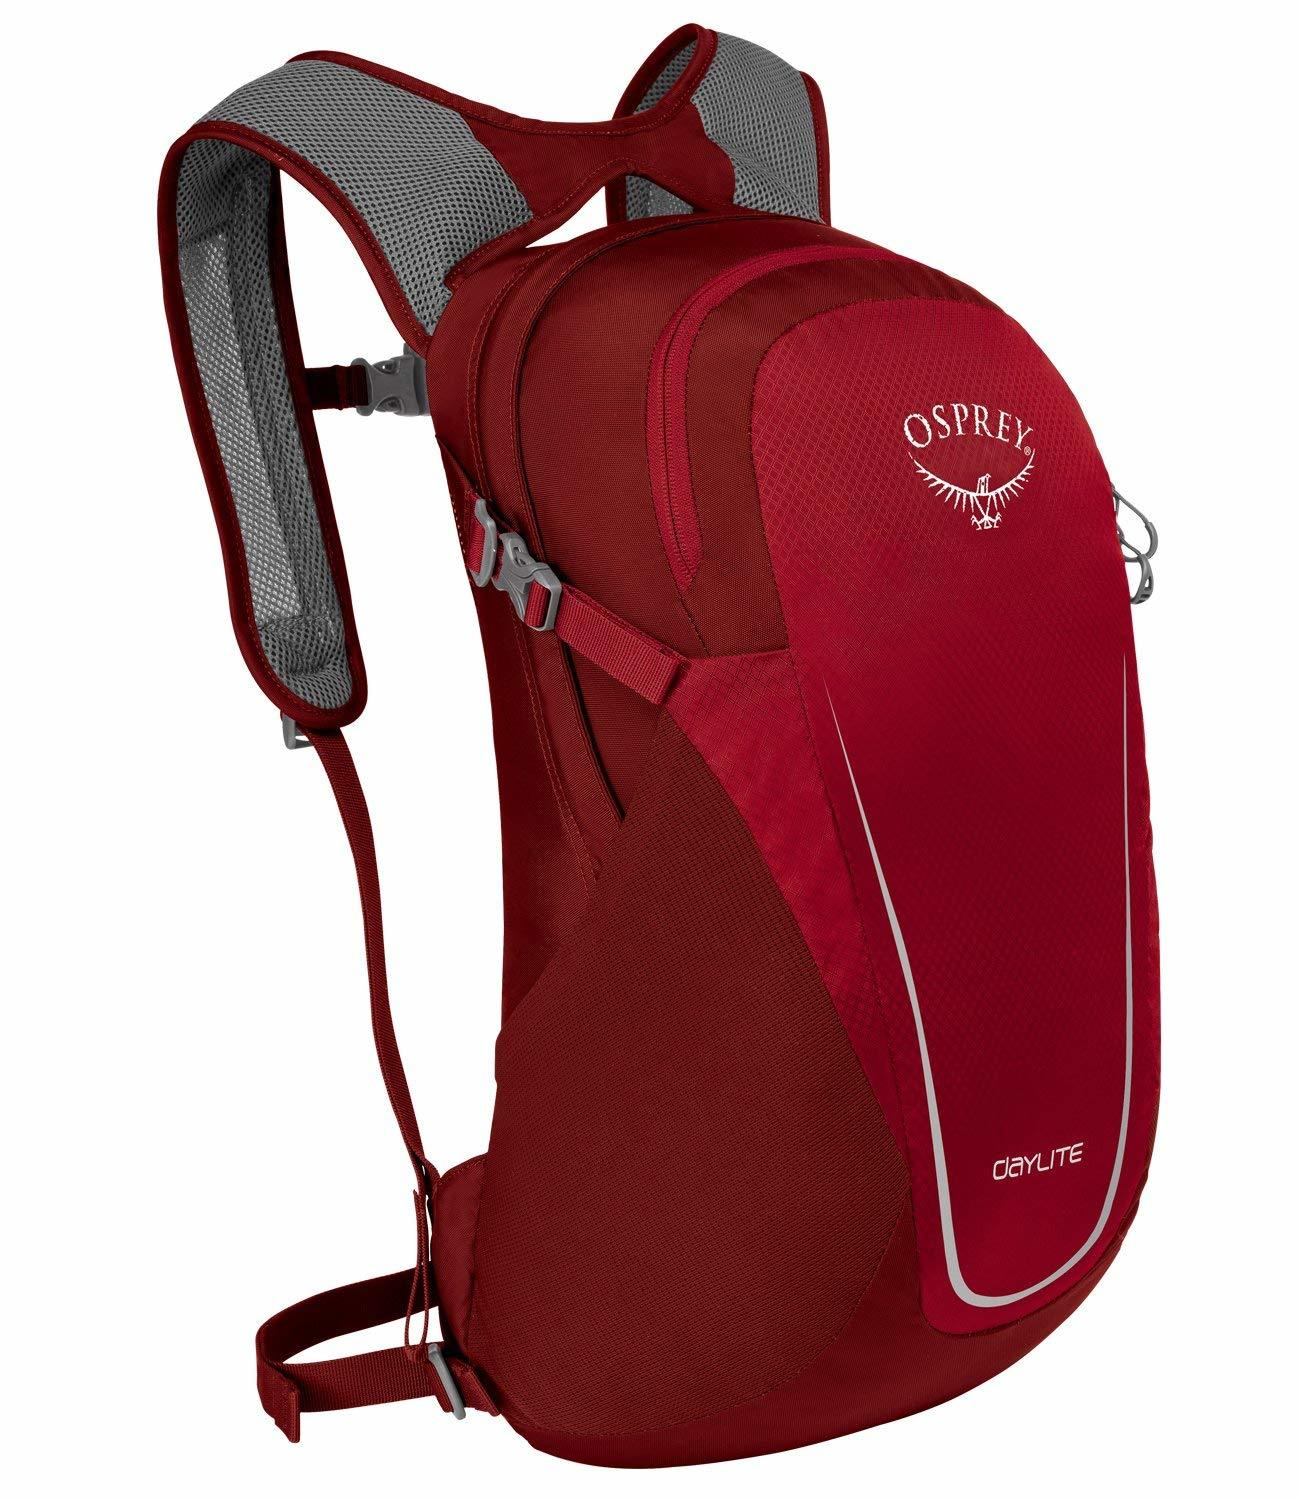 Osprey Packs Daylight Daypack